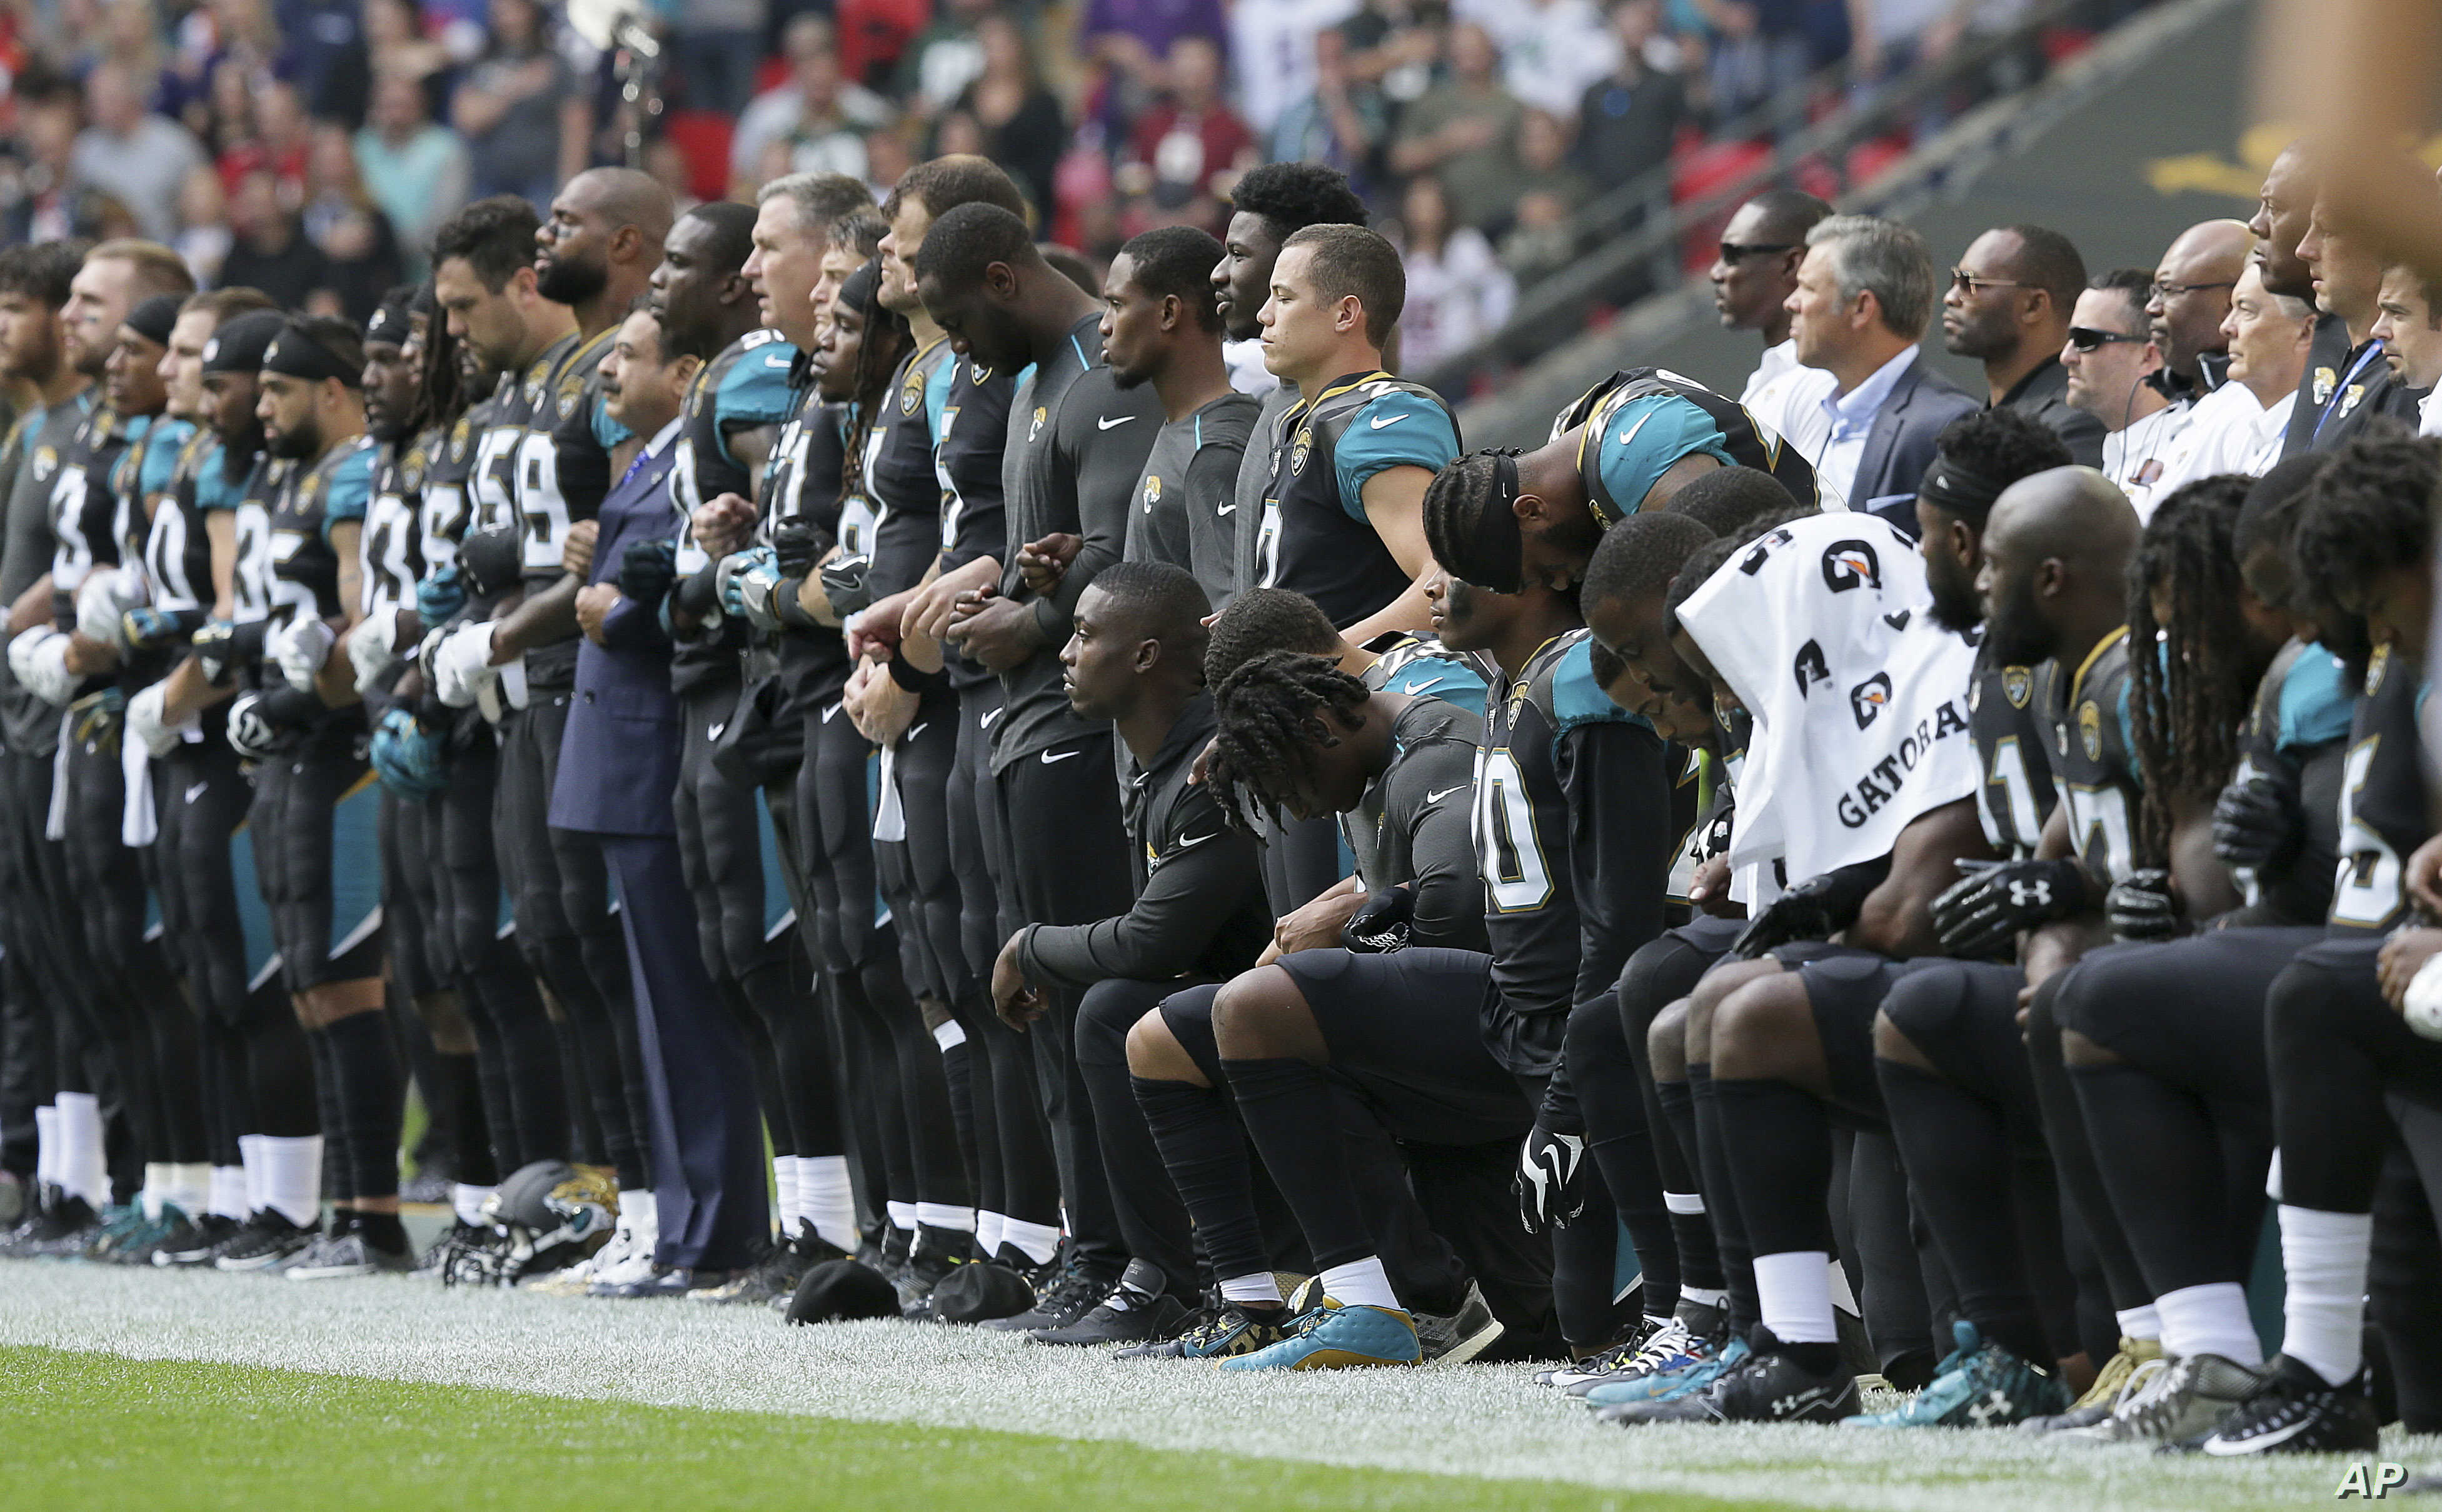 a4ef4b210f1 Jacksonville Jaguars players lock arms and kneel down during the playing of  the U.S. national anthem before an NFL football game against the Baltimore  ...